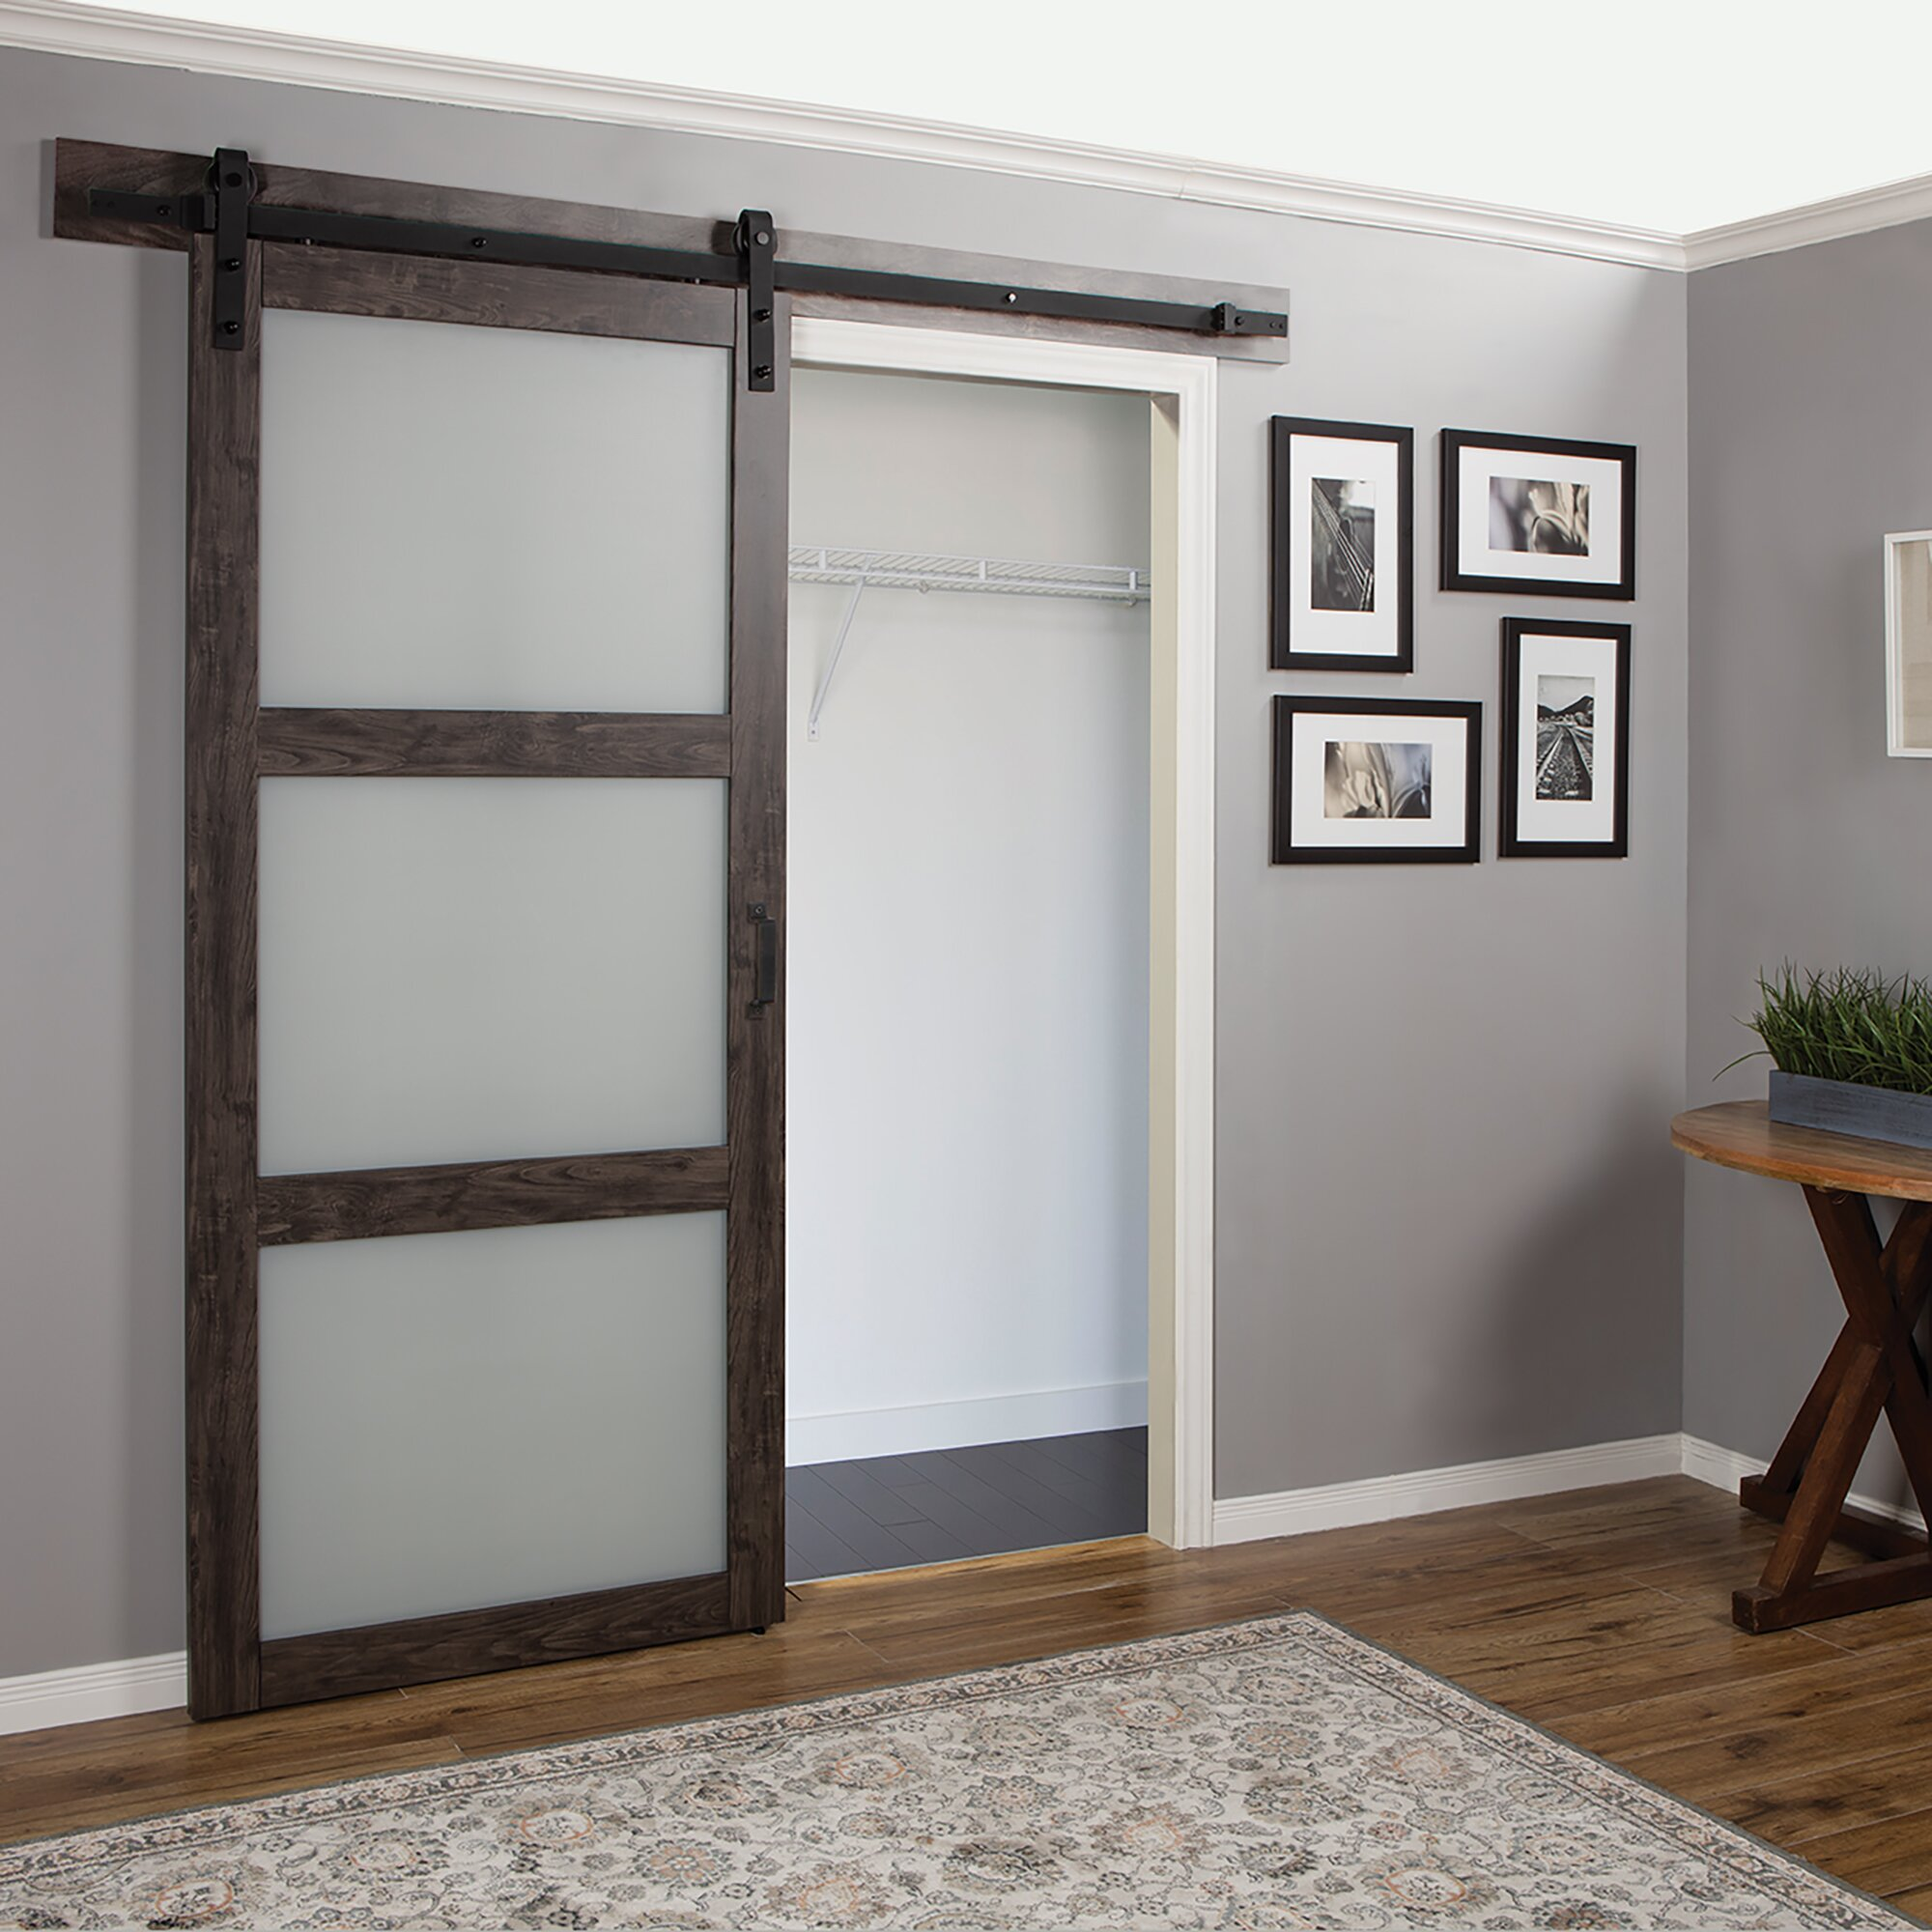 Erias home designs continental frosted glass 1 panel for Narrow barn door